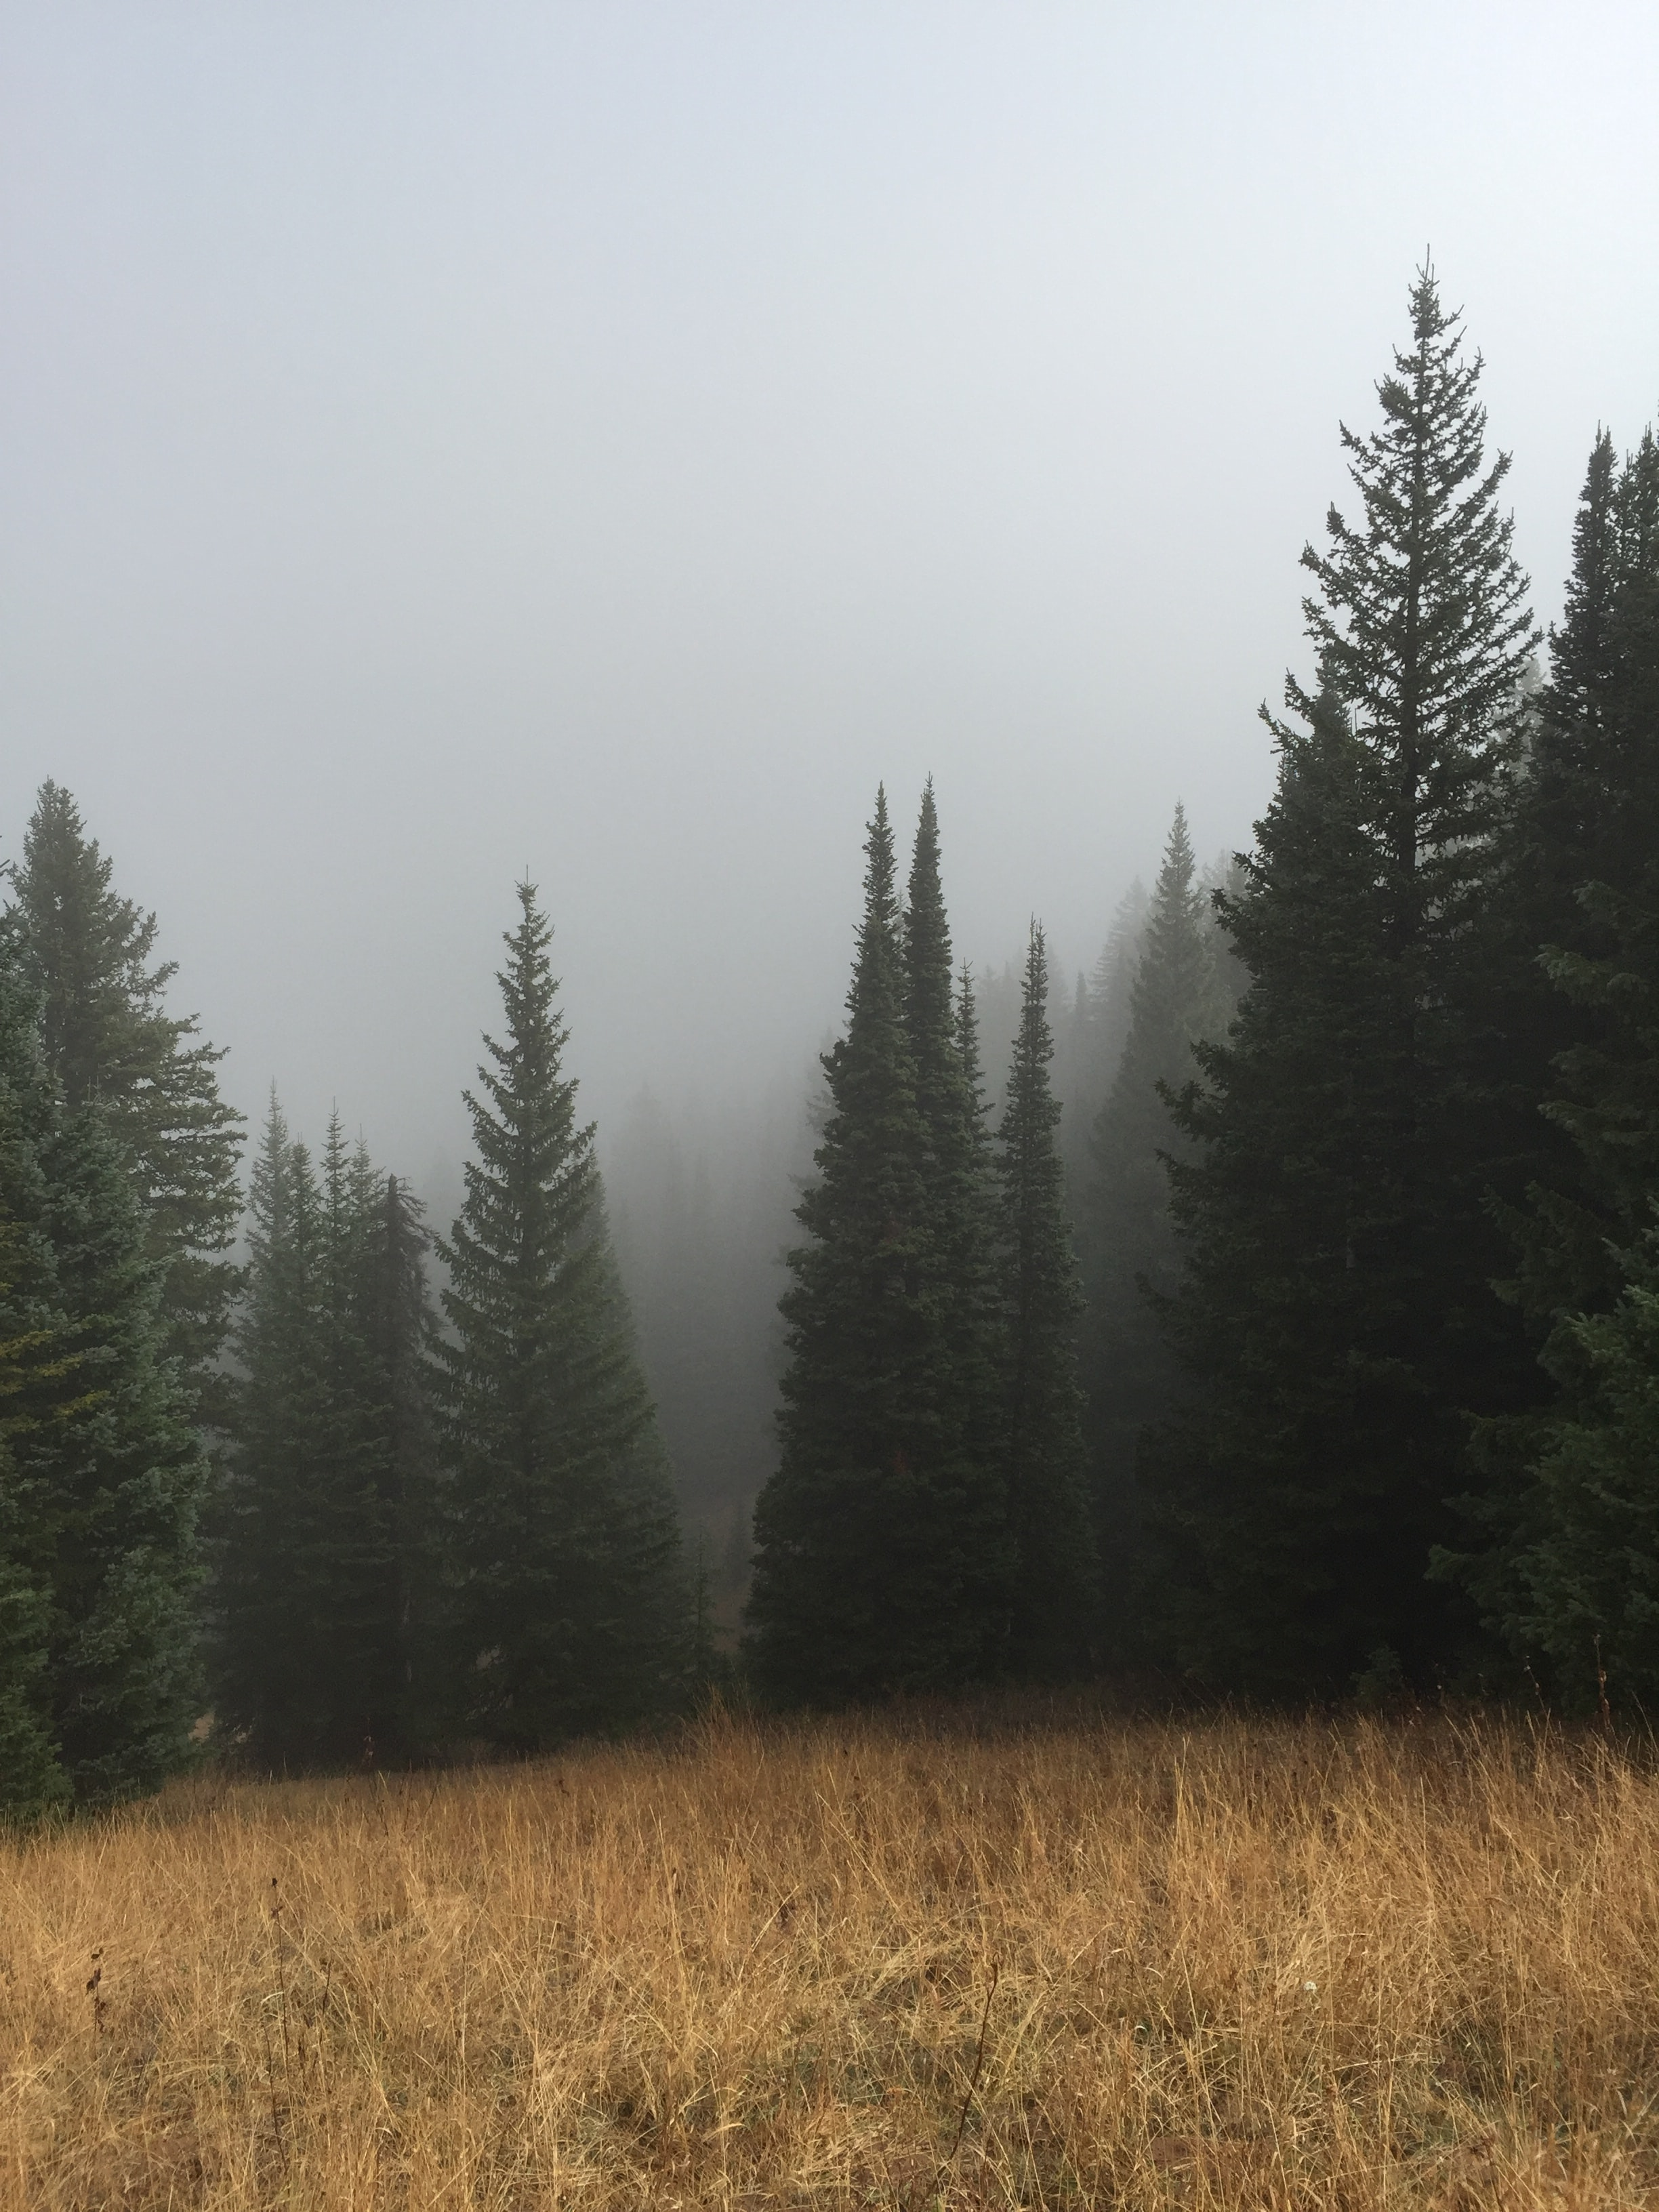 green pine trees below a cloudy sky